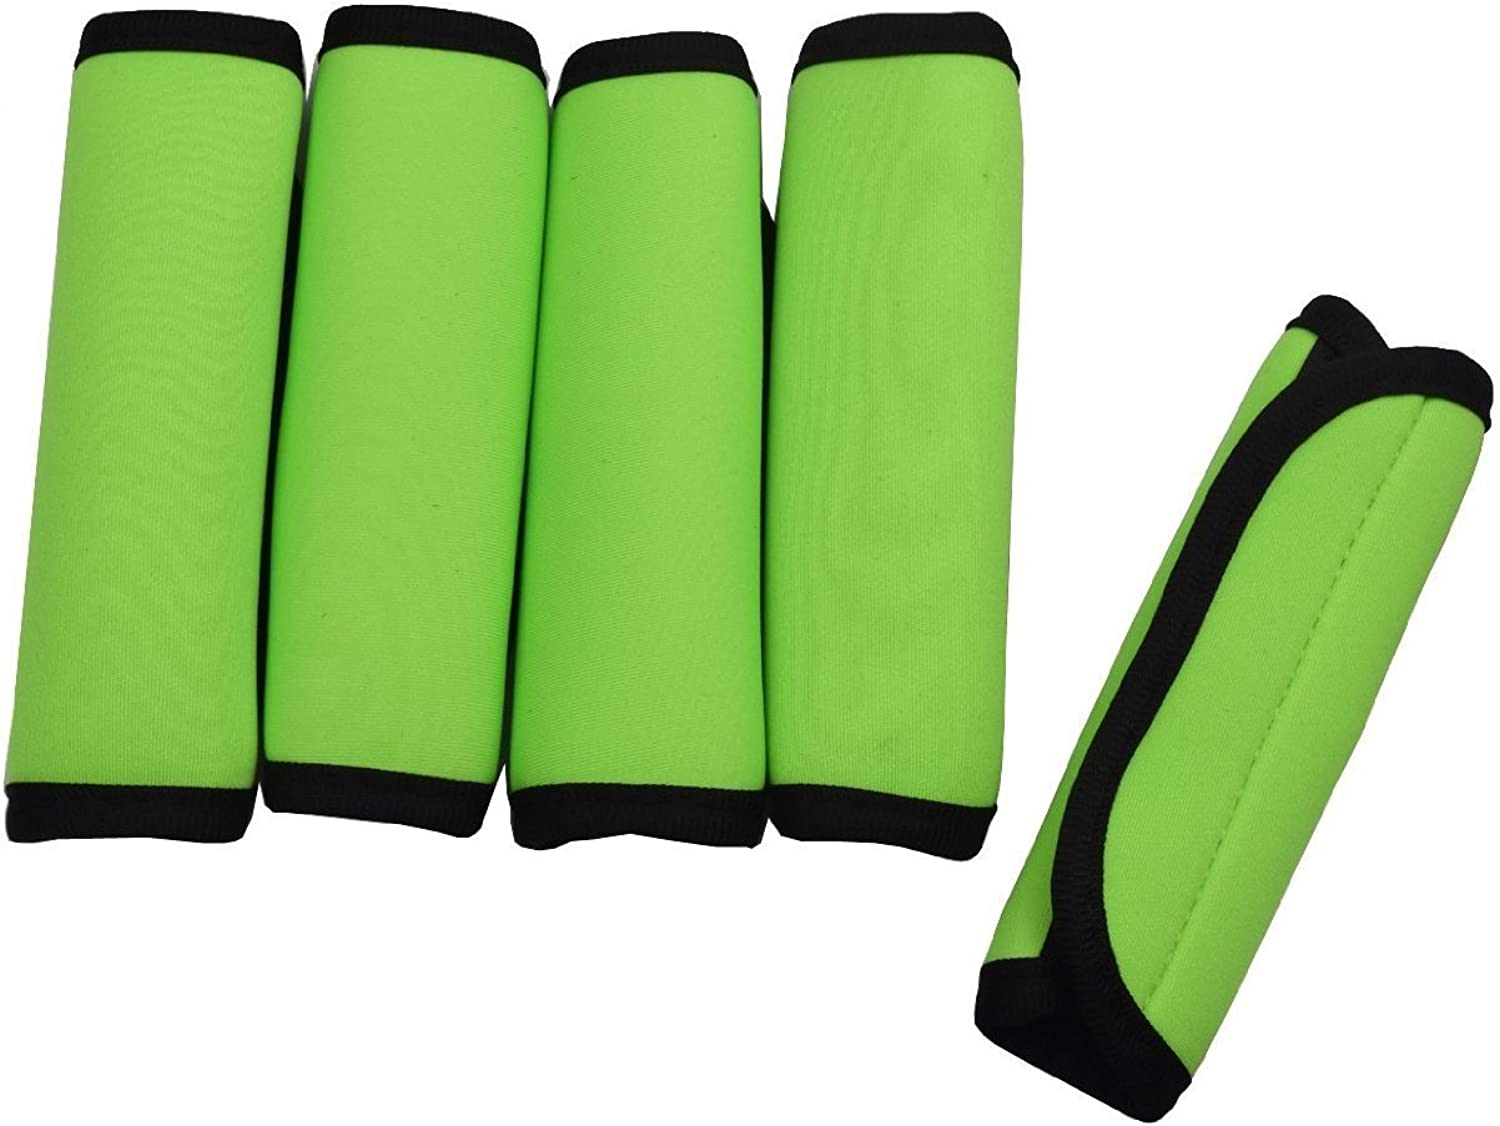 Fluorescent Green haoun 4pcs Luggage Handle Grips Wrap Travel Neoprene Water-resistant Hand Cover for Suitcase Bag